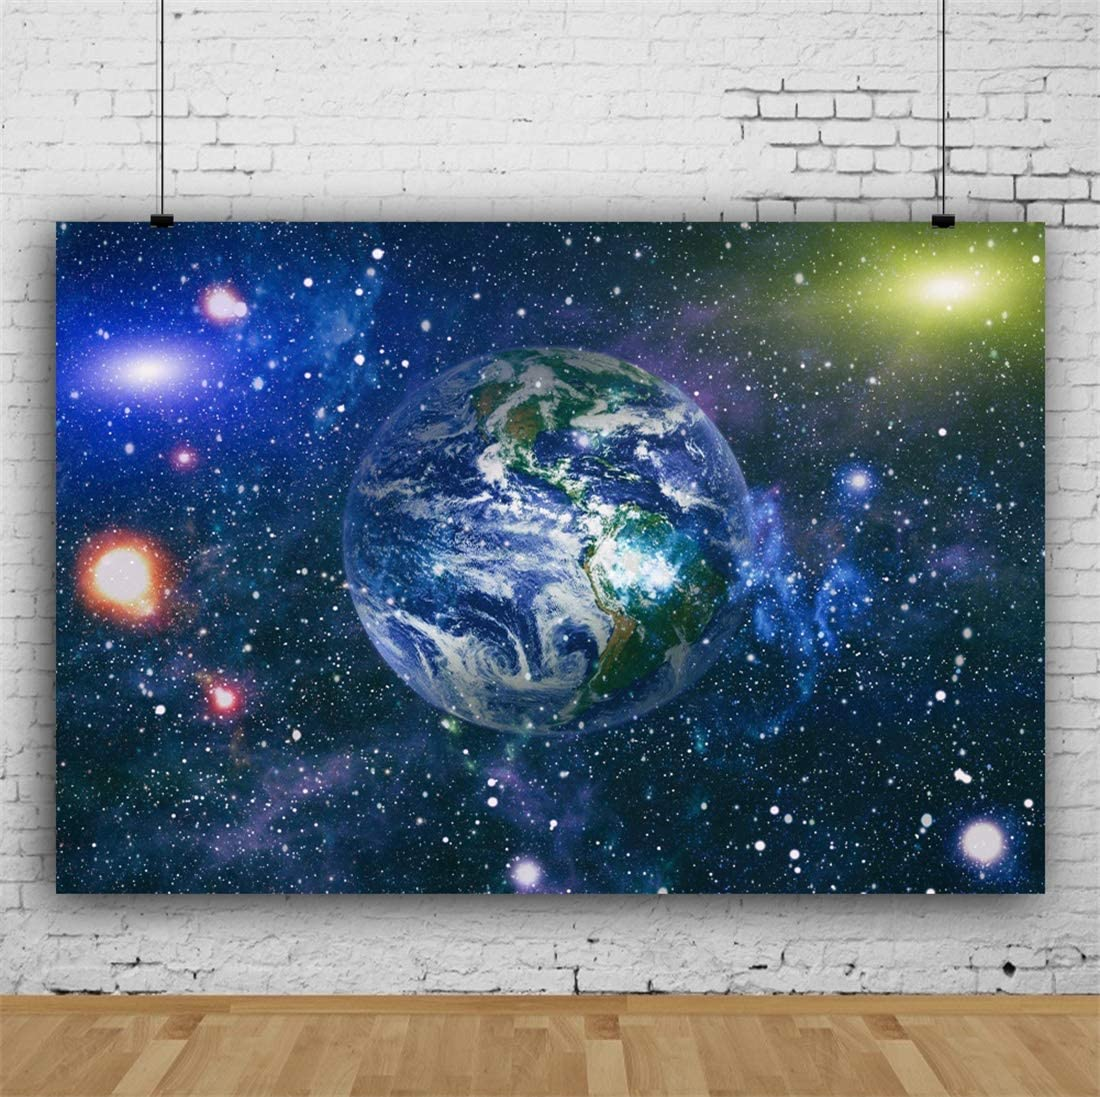 Yeele 10x8ft Universe Photography Background Earth Outer Space Planet Galaxy Milky Way Galaxy Shining Stars Solar System Photo Backdrop Studio Props Video Drape